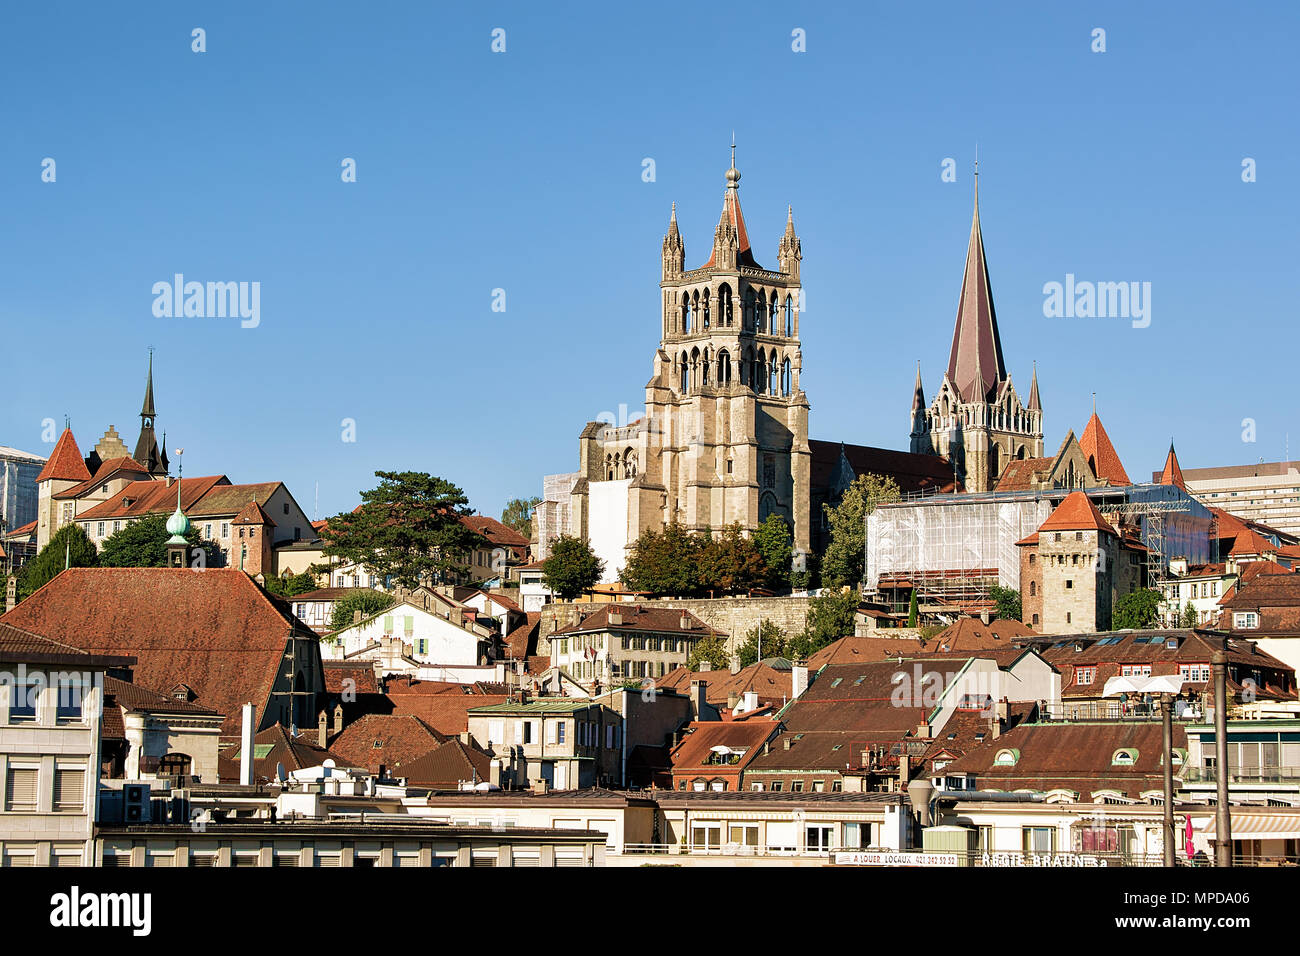 Lausanne, Switzerland - August 26, 2018: Cathedral of Notre Dame in Lausanne, Switzerland. Seen from Le Flon district - Stock Image